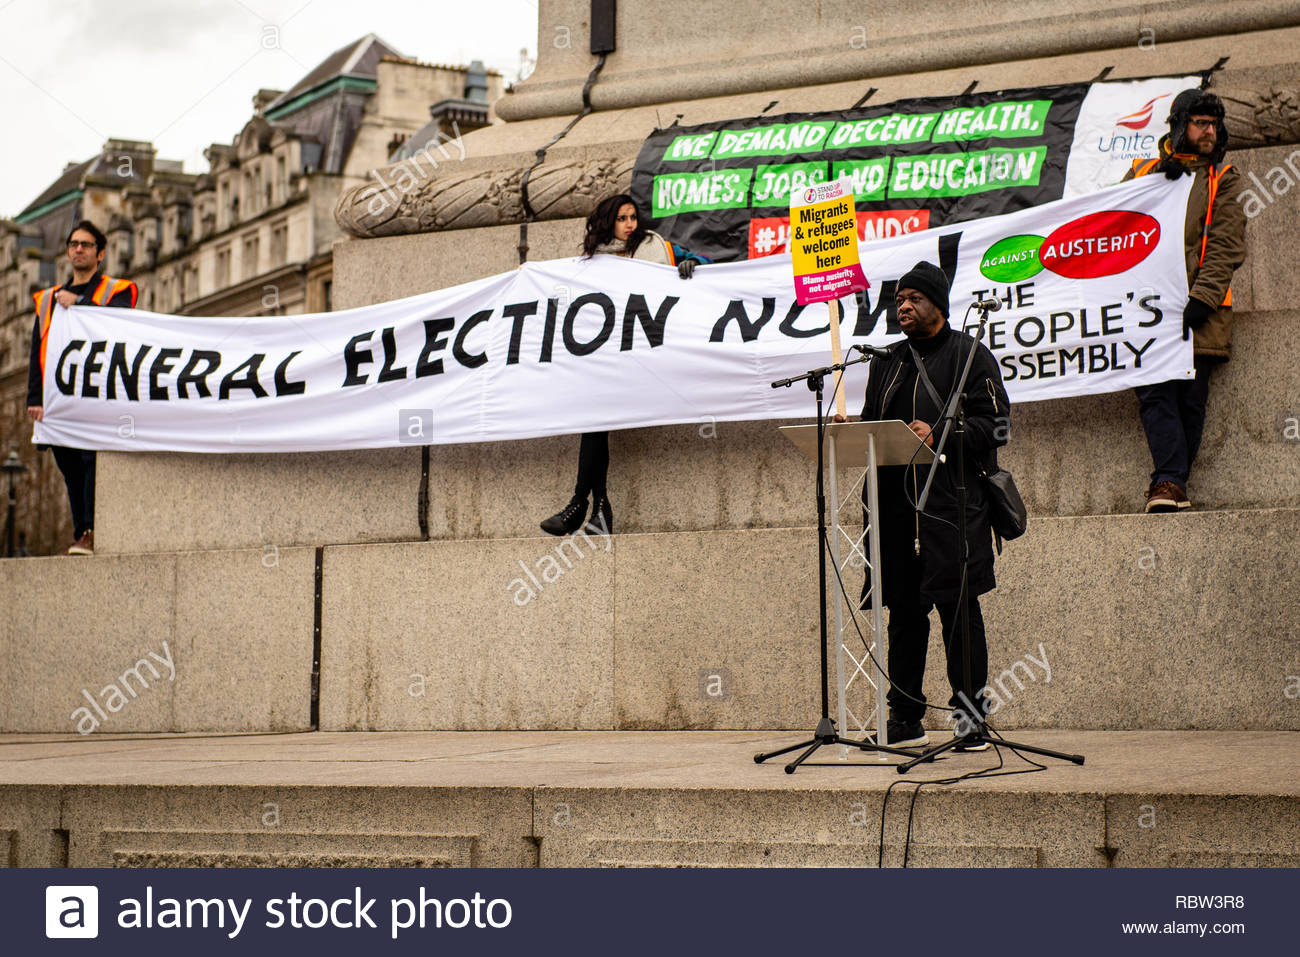 London, UK. 12th January, 2019. People from all over the Uk come to London to call for an end to austerity, and for a General Election. London, Great Britain, 12 Jan 2019  Credit: David Nash/Alamy Live News - Stock Image